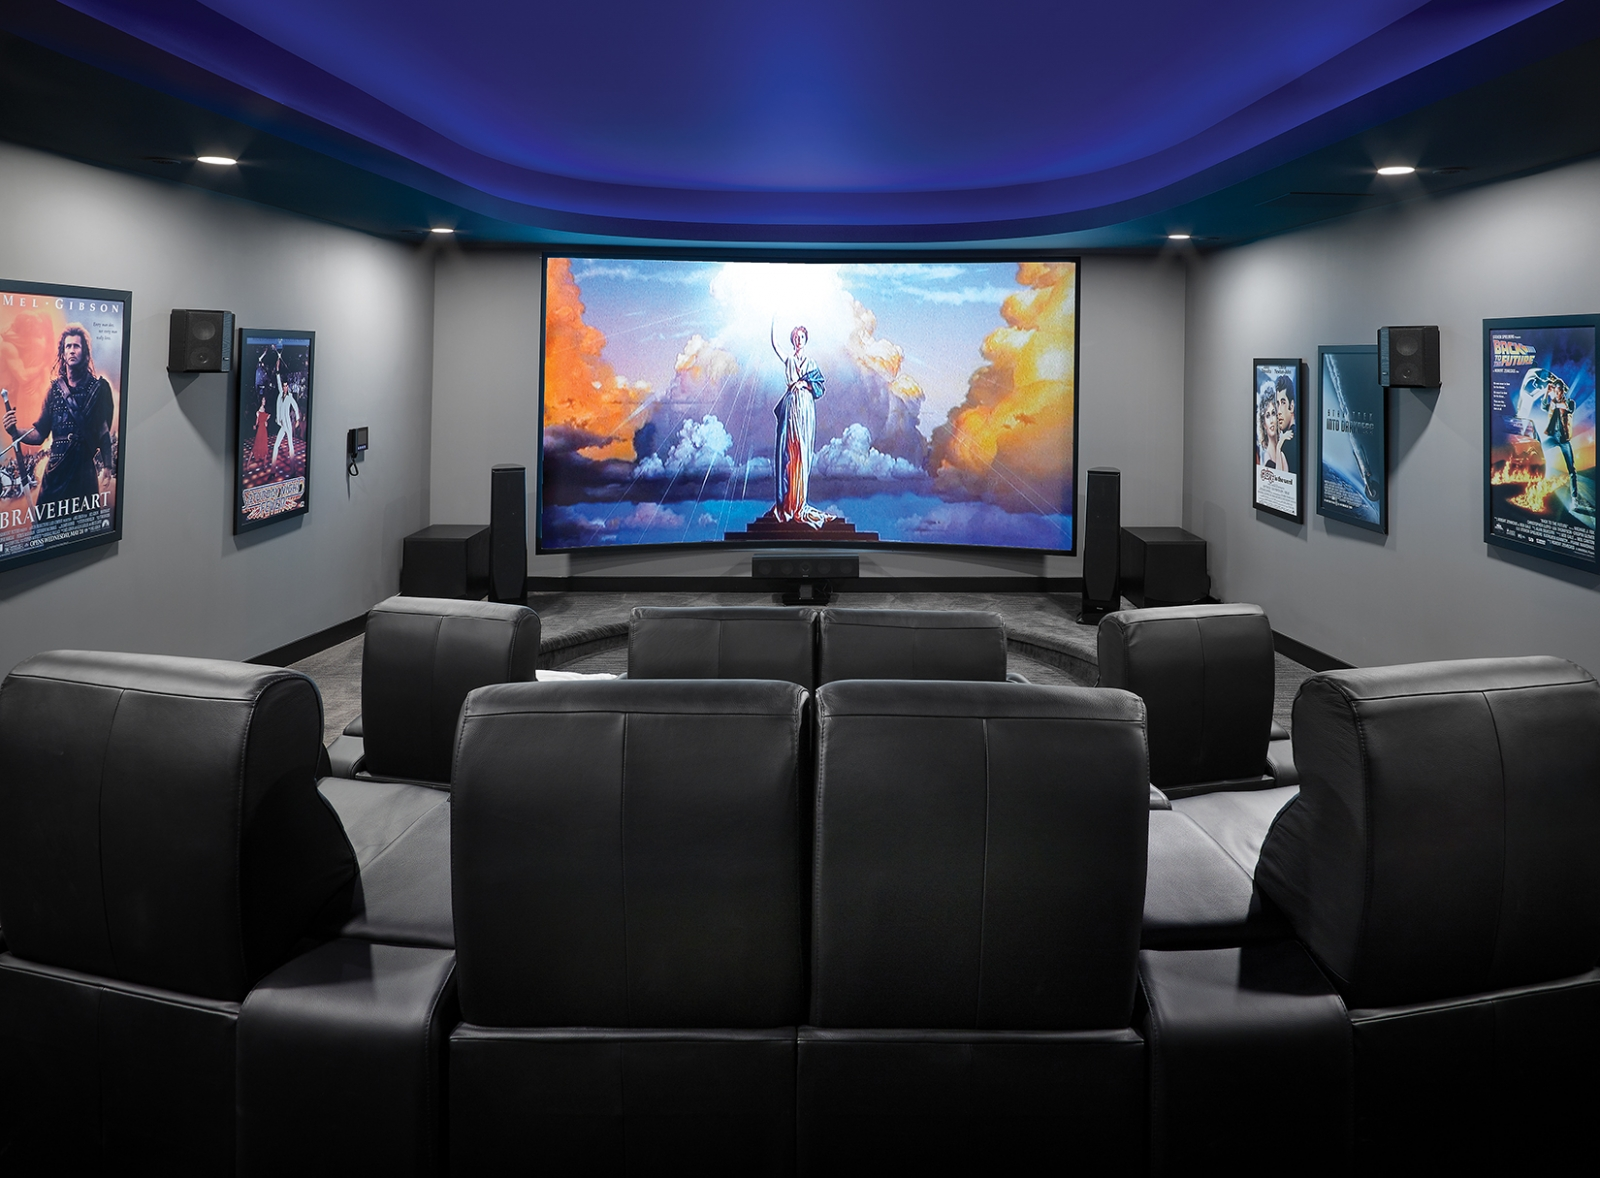 Decor-HomeTheatre2.jpg